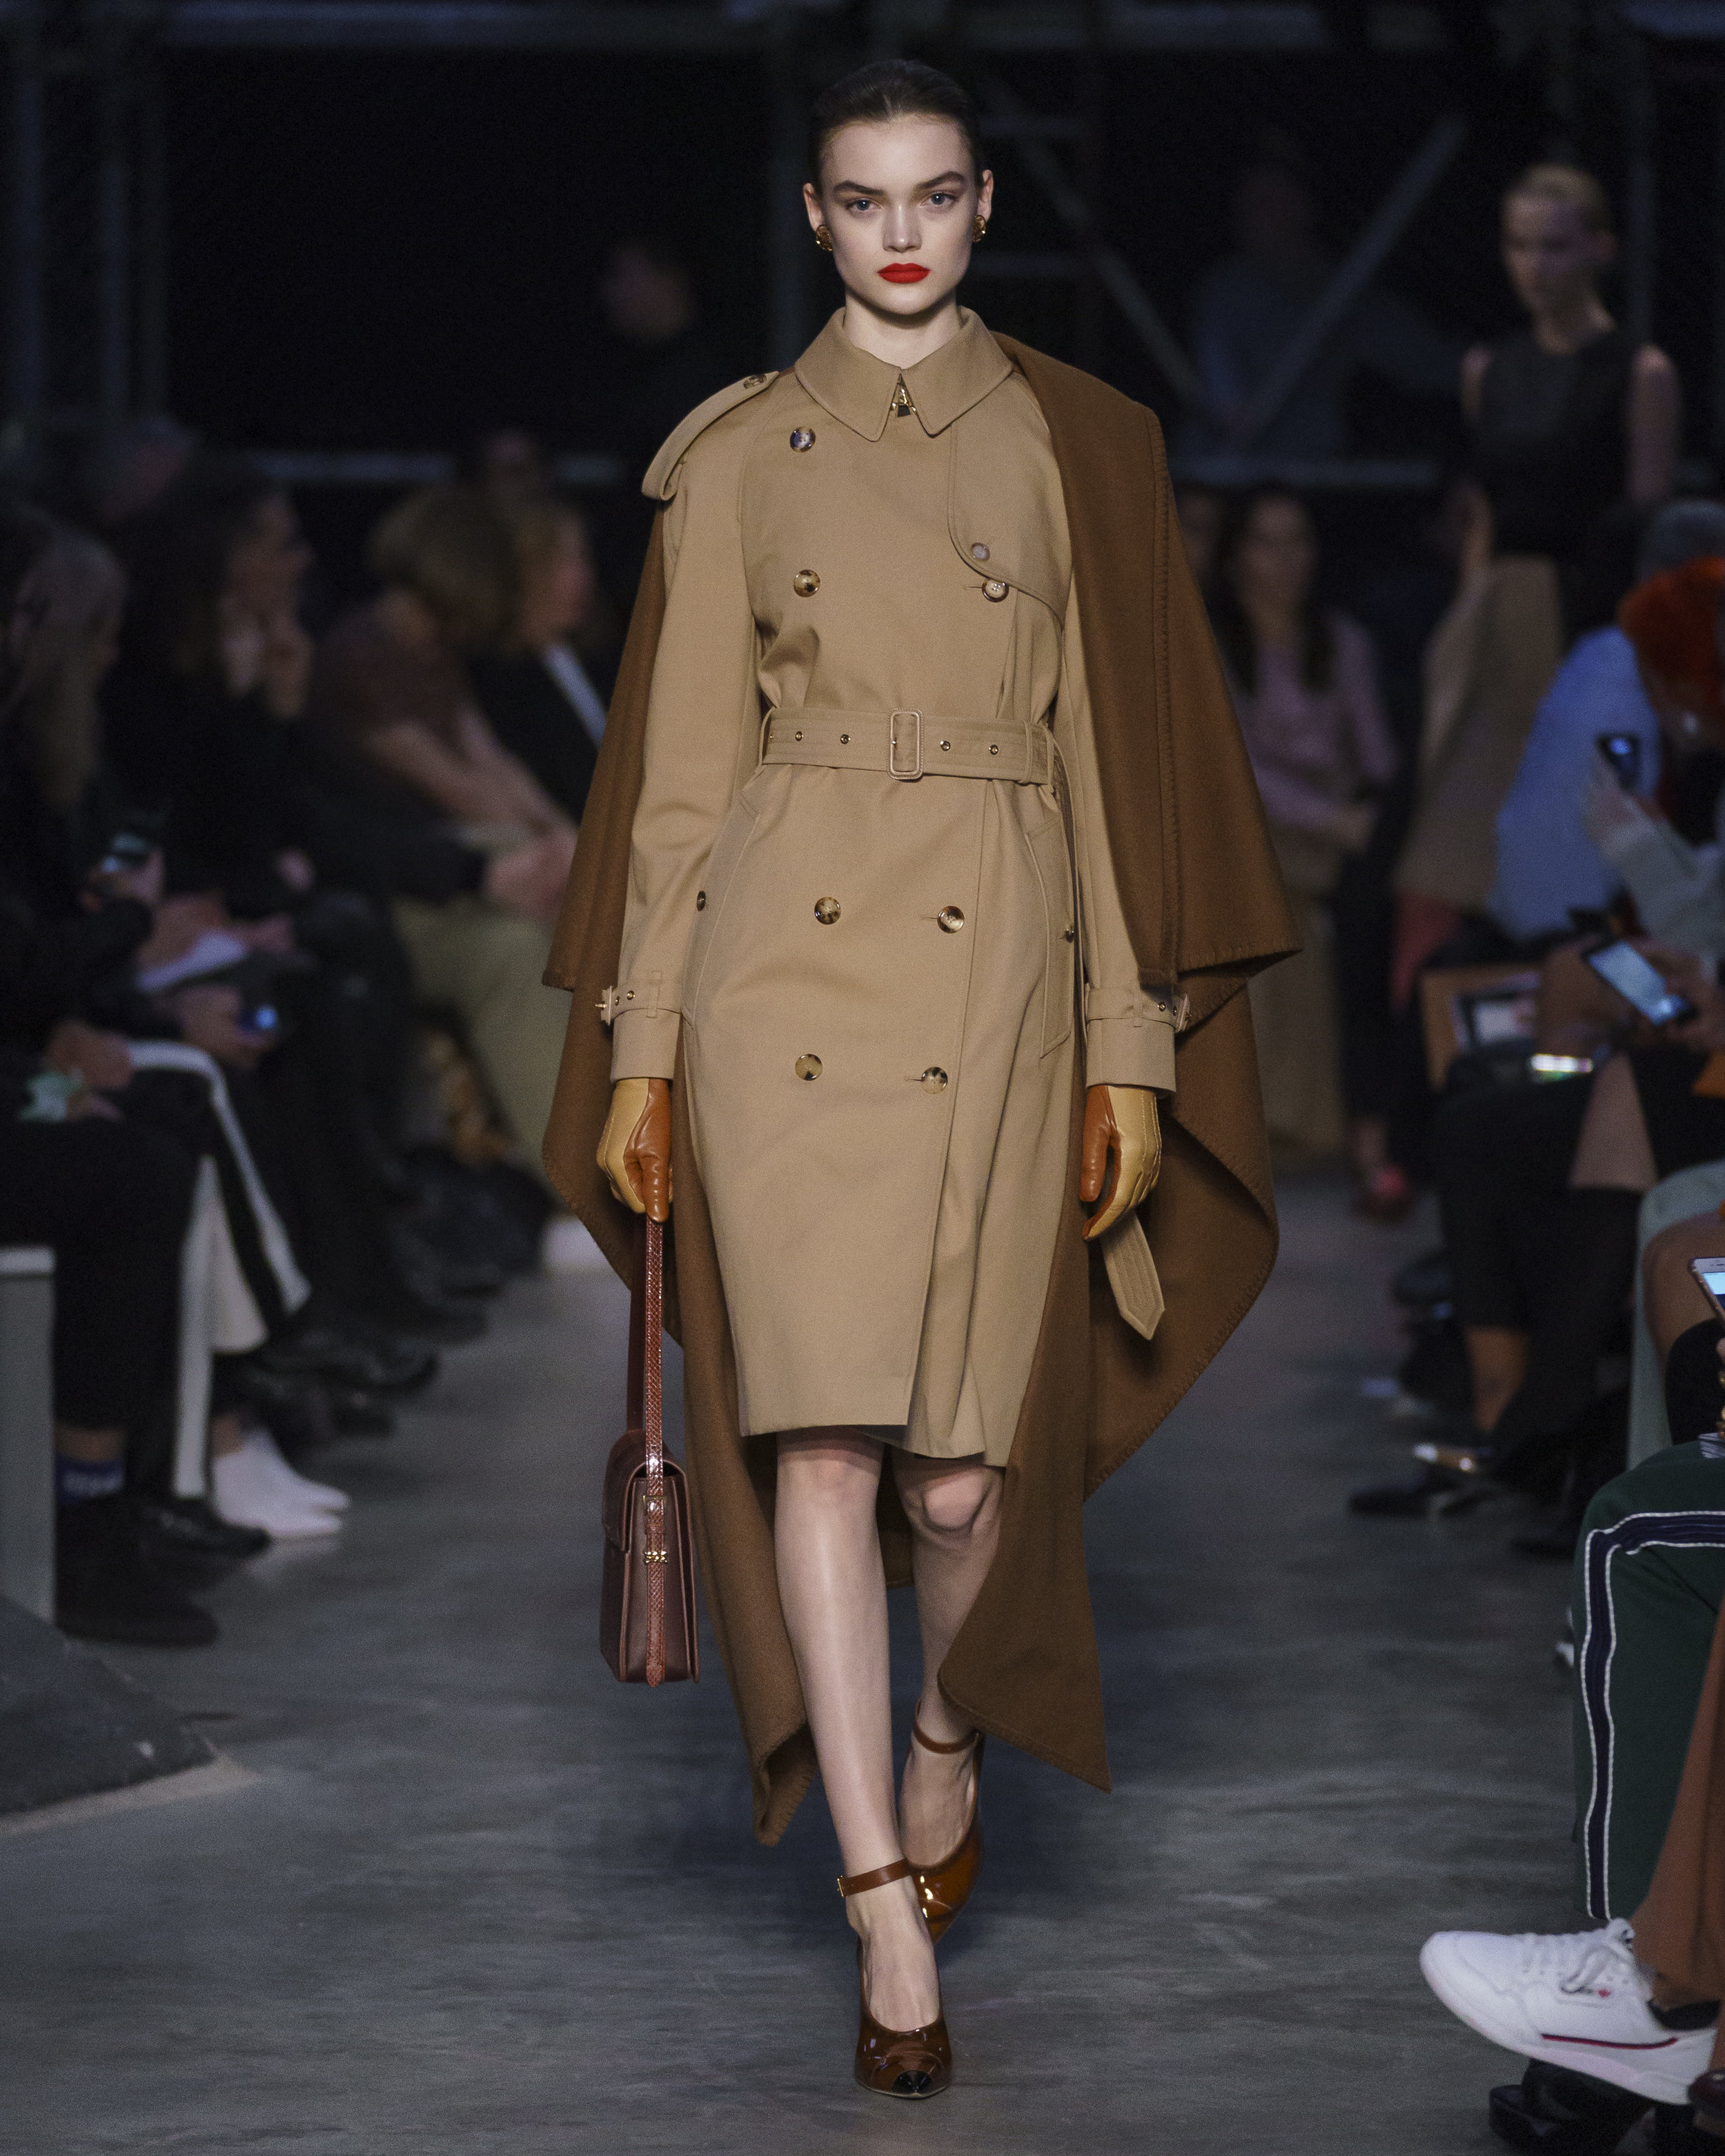 Burberry Autumn_Winter 2019 Collection - Look 49.jpg